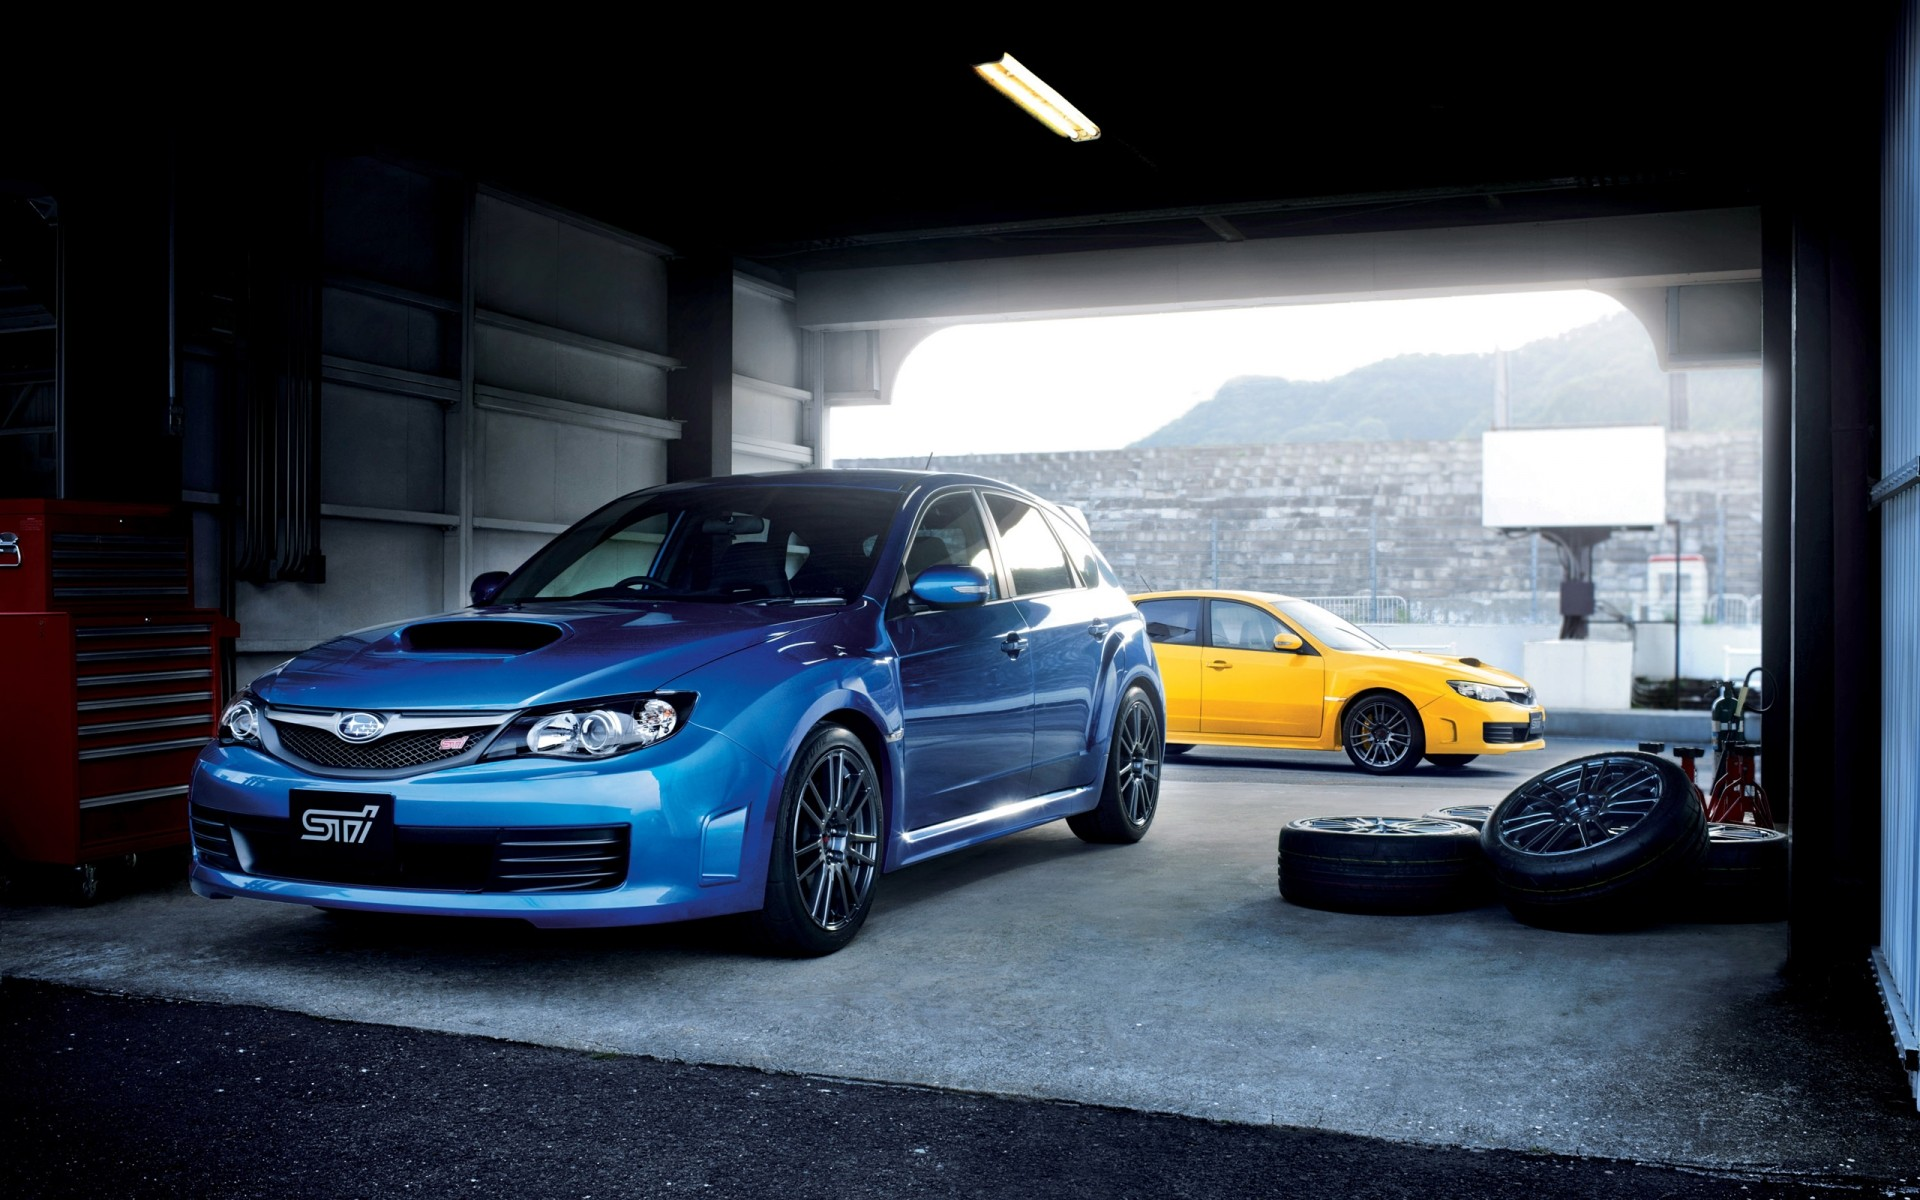 Blue and Yellow Subaru WRX STI wallpapers | Blue and ...